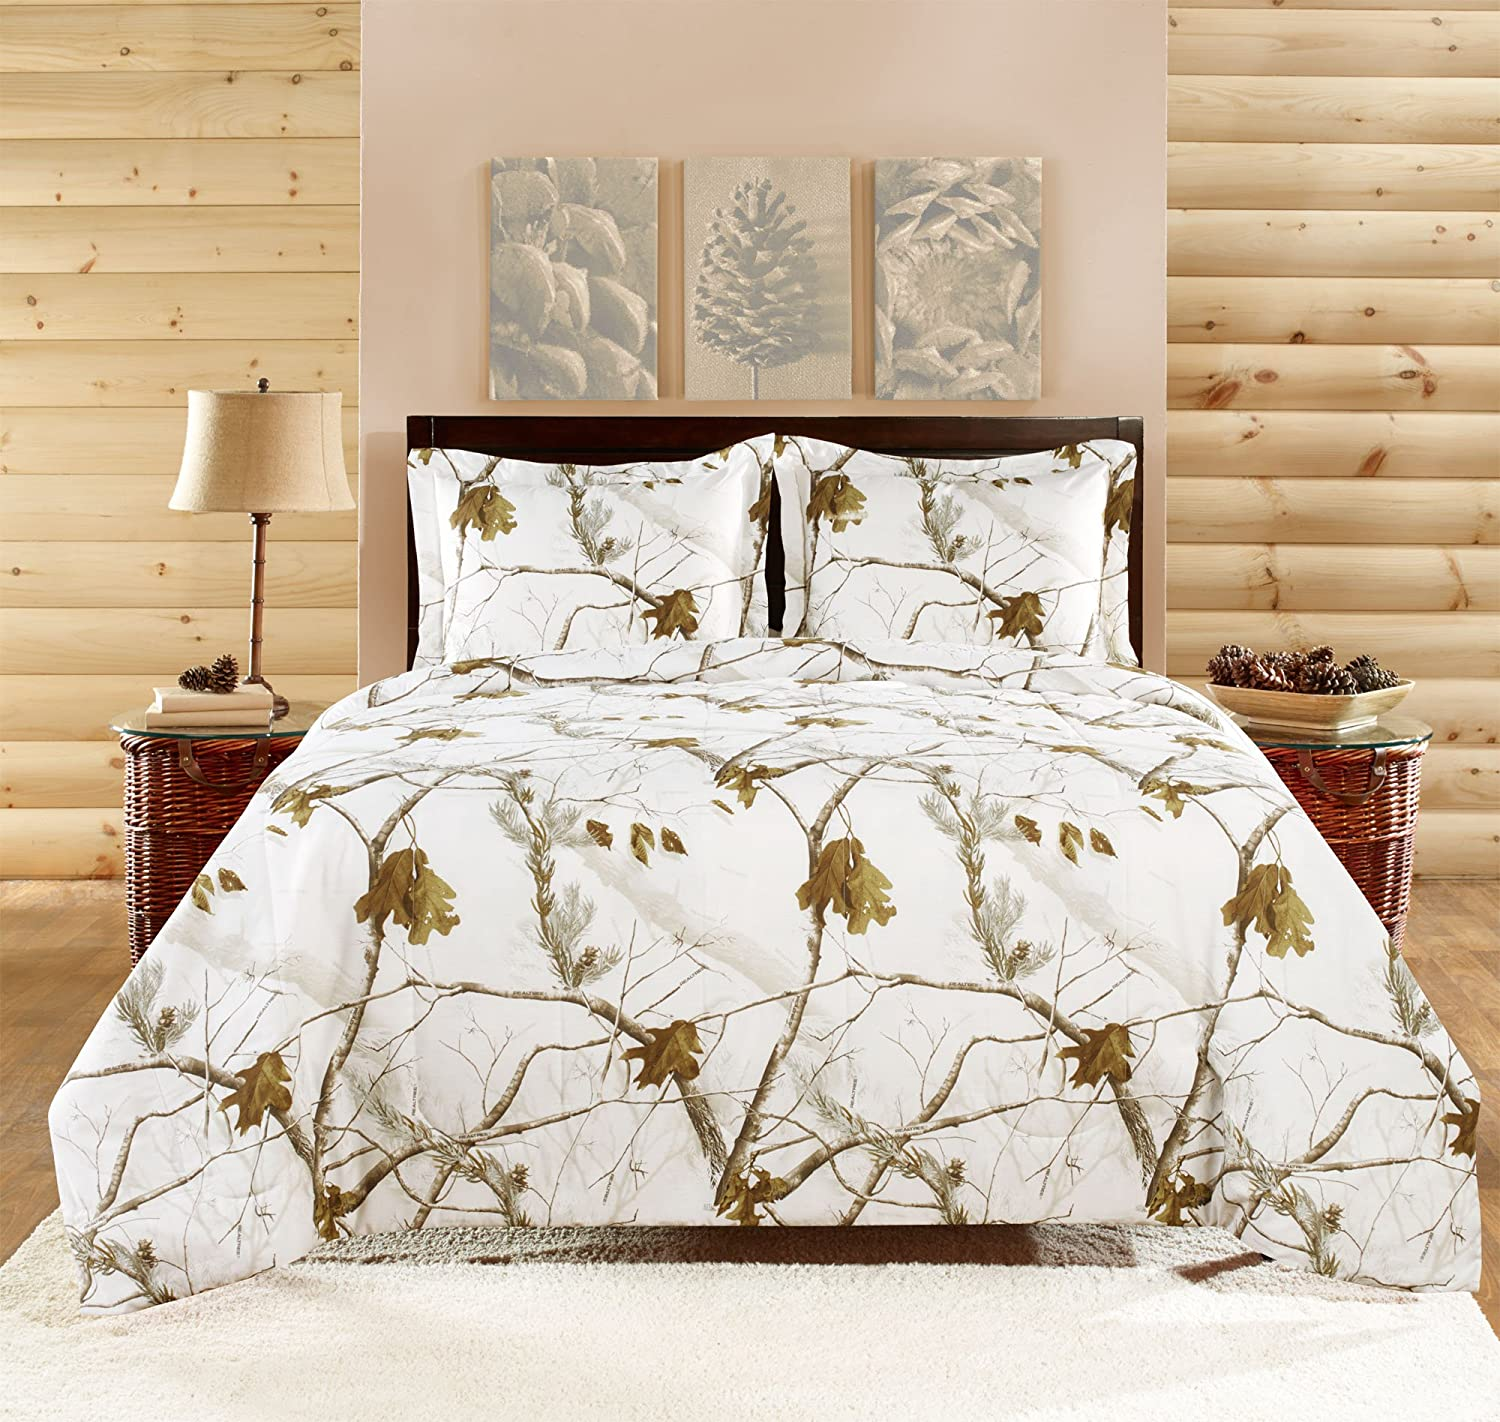 Realtree APC 3 Piece Comforter Set, Queen, Bright Snow